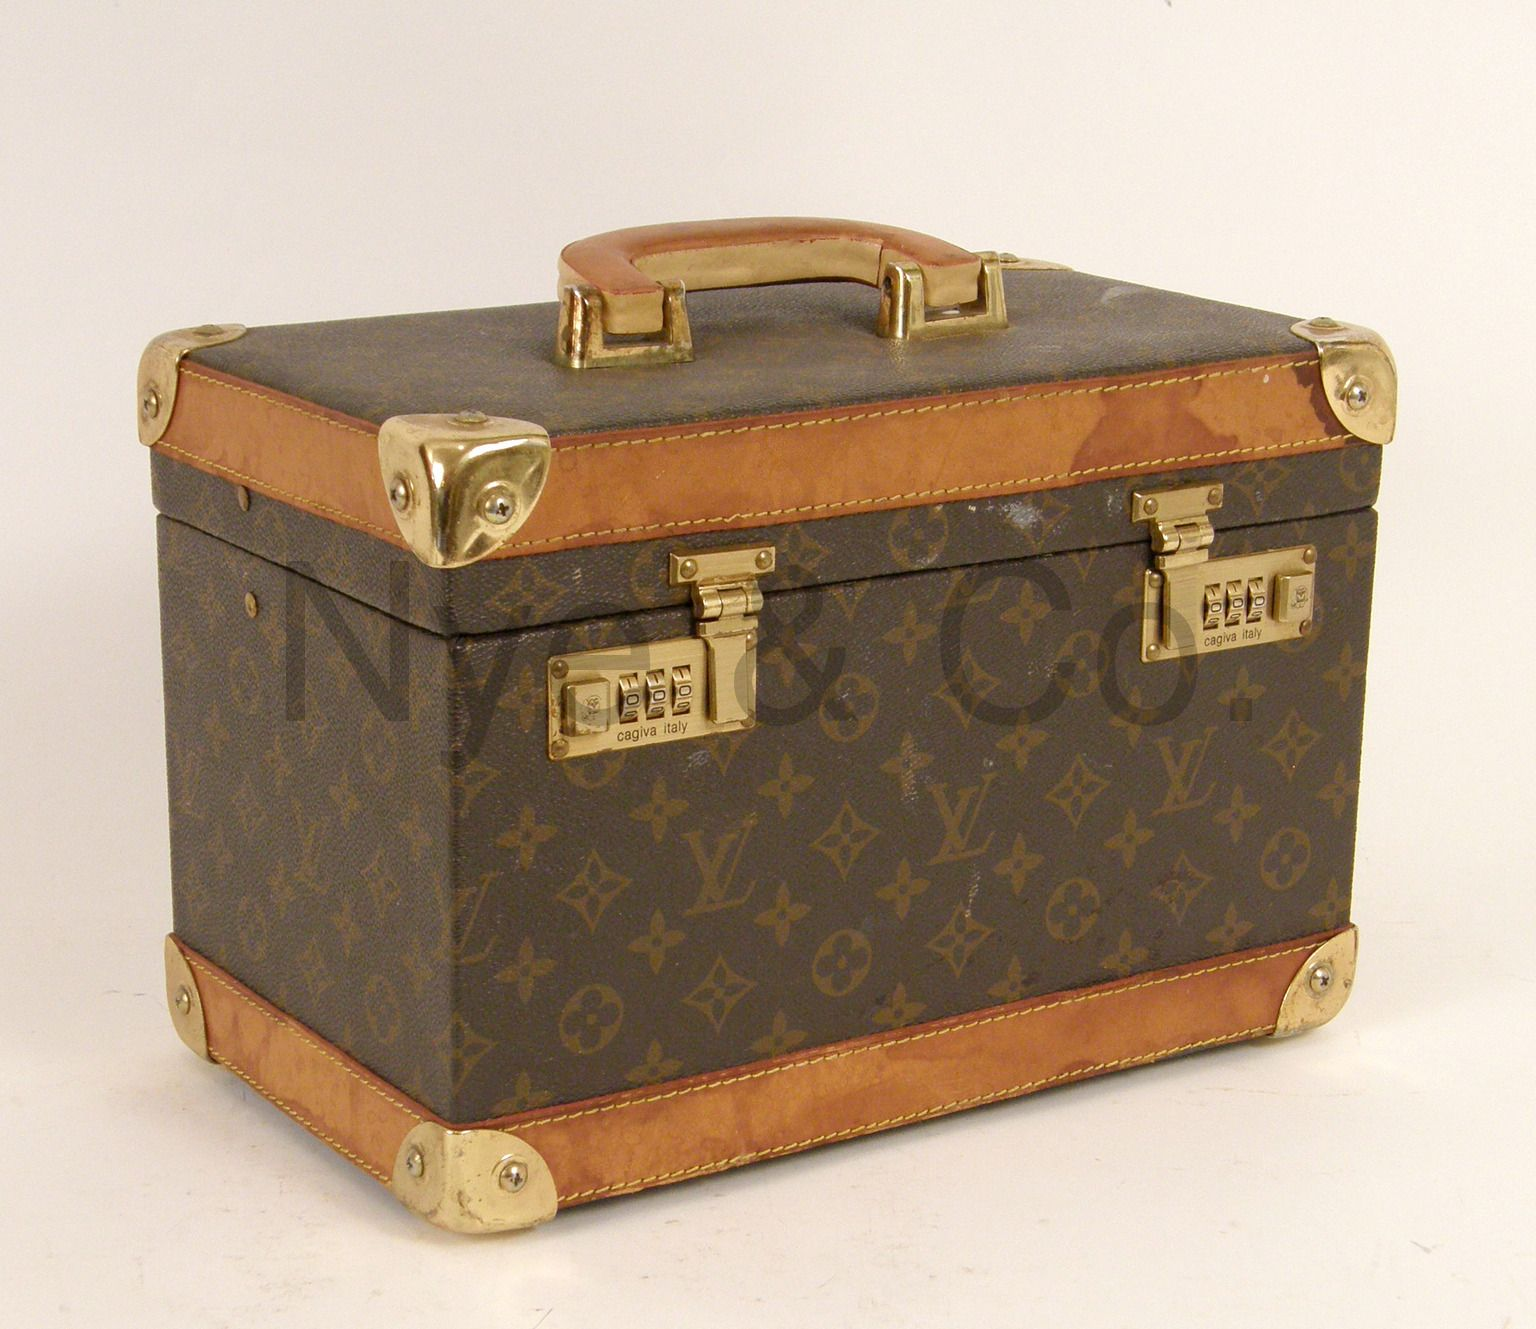 e6820a6242a VINTAGE LOUIS VUITTON COSMETIC CASE